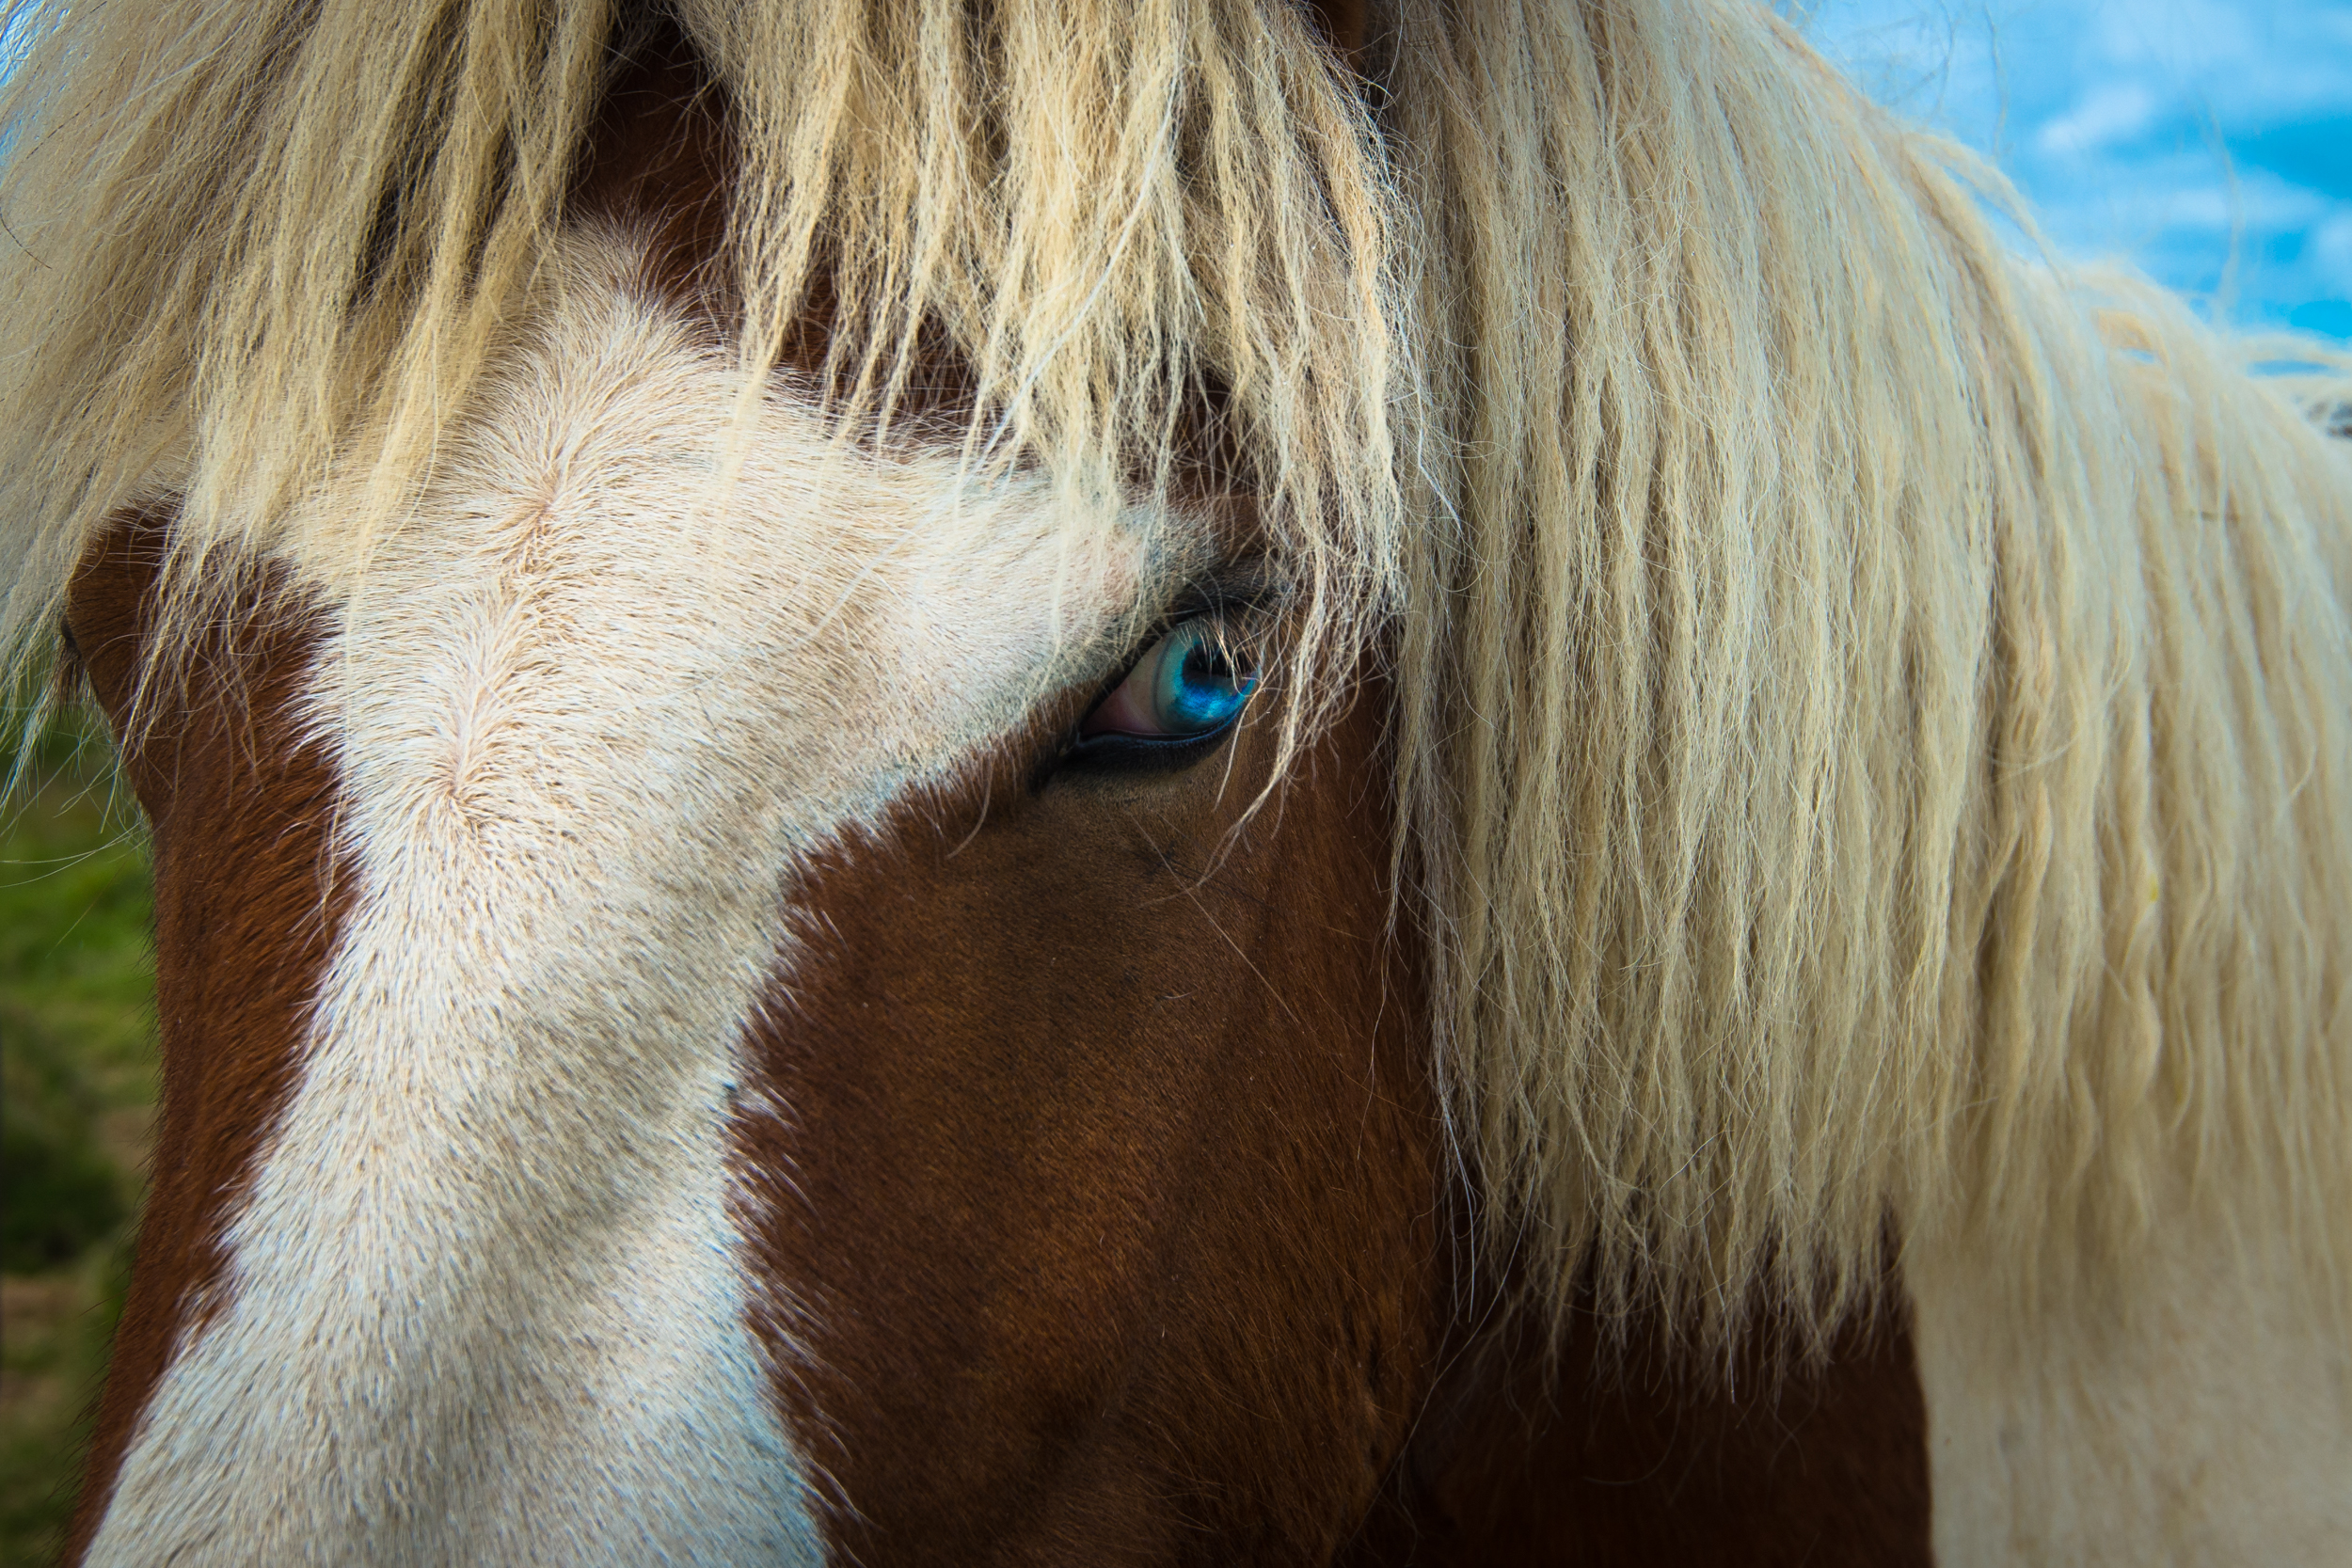 An Icelandic horse with beautiful blue eyes